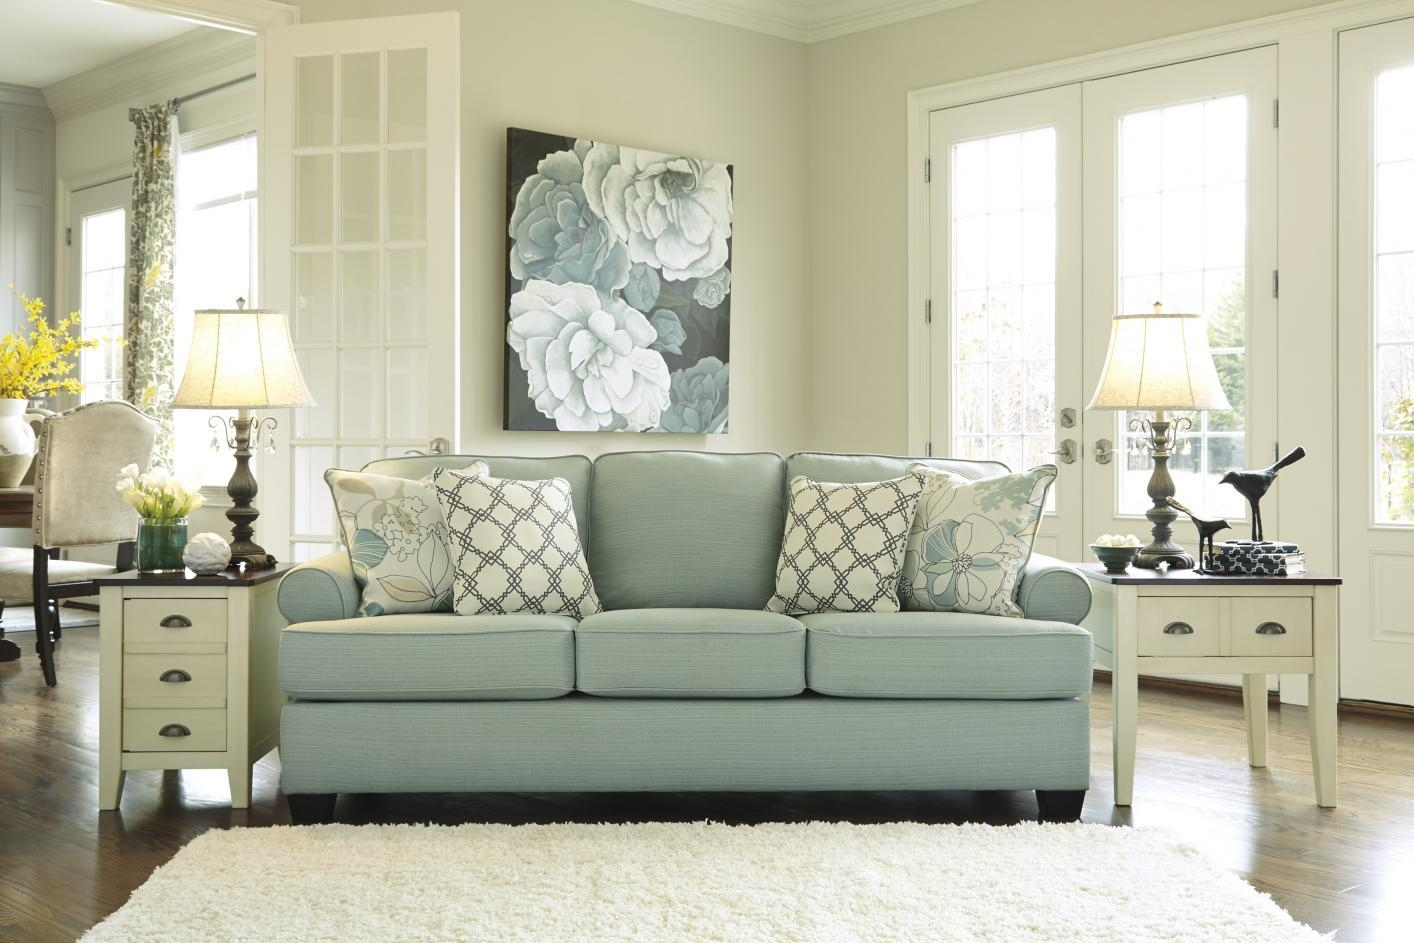 Daystar Seafoam Green Fabric Sofa – Steal A Sofa Furniture Outlet Intended For Seafoam Green Couches (Image 7 of 20)